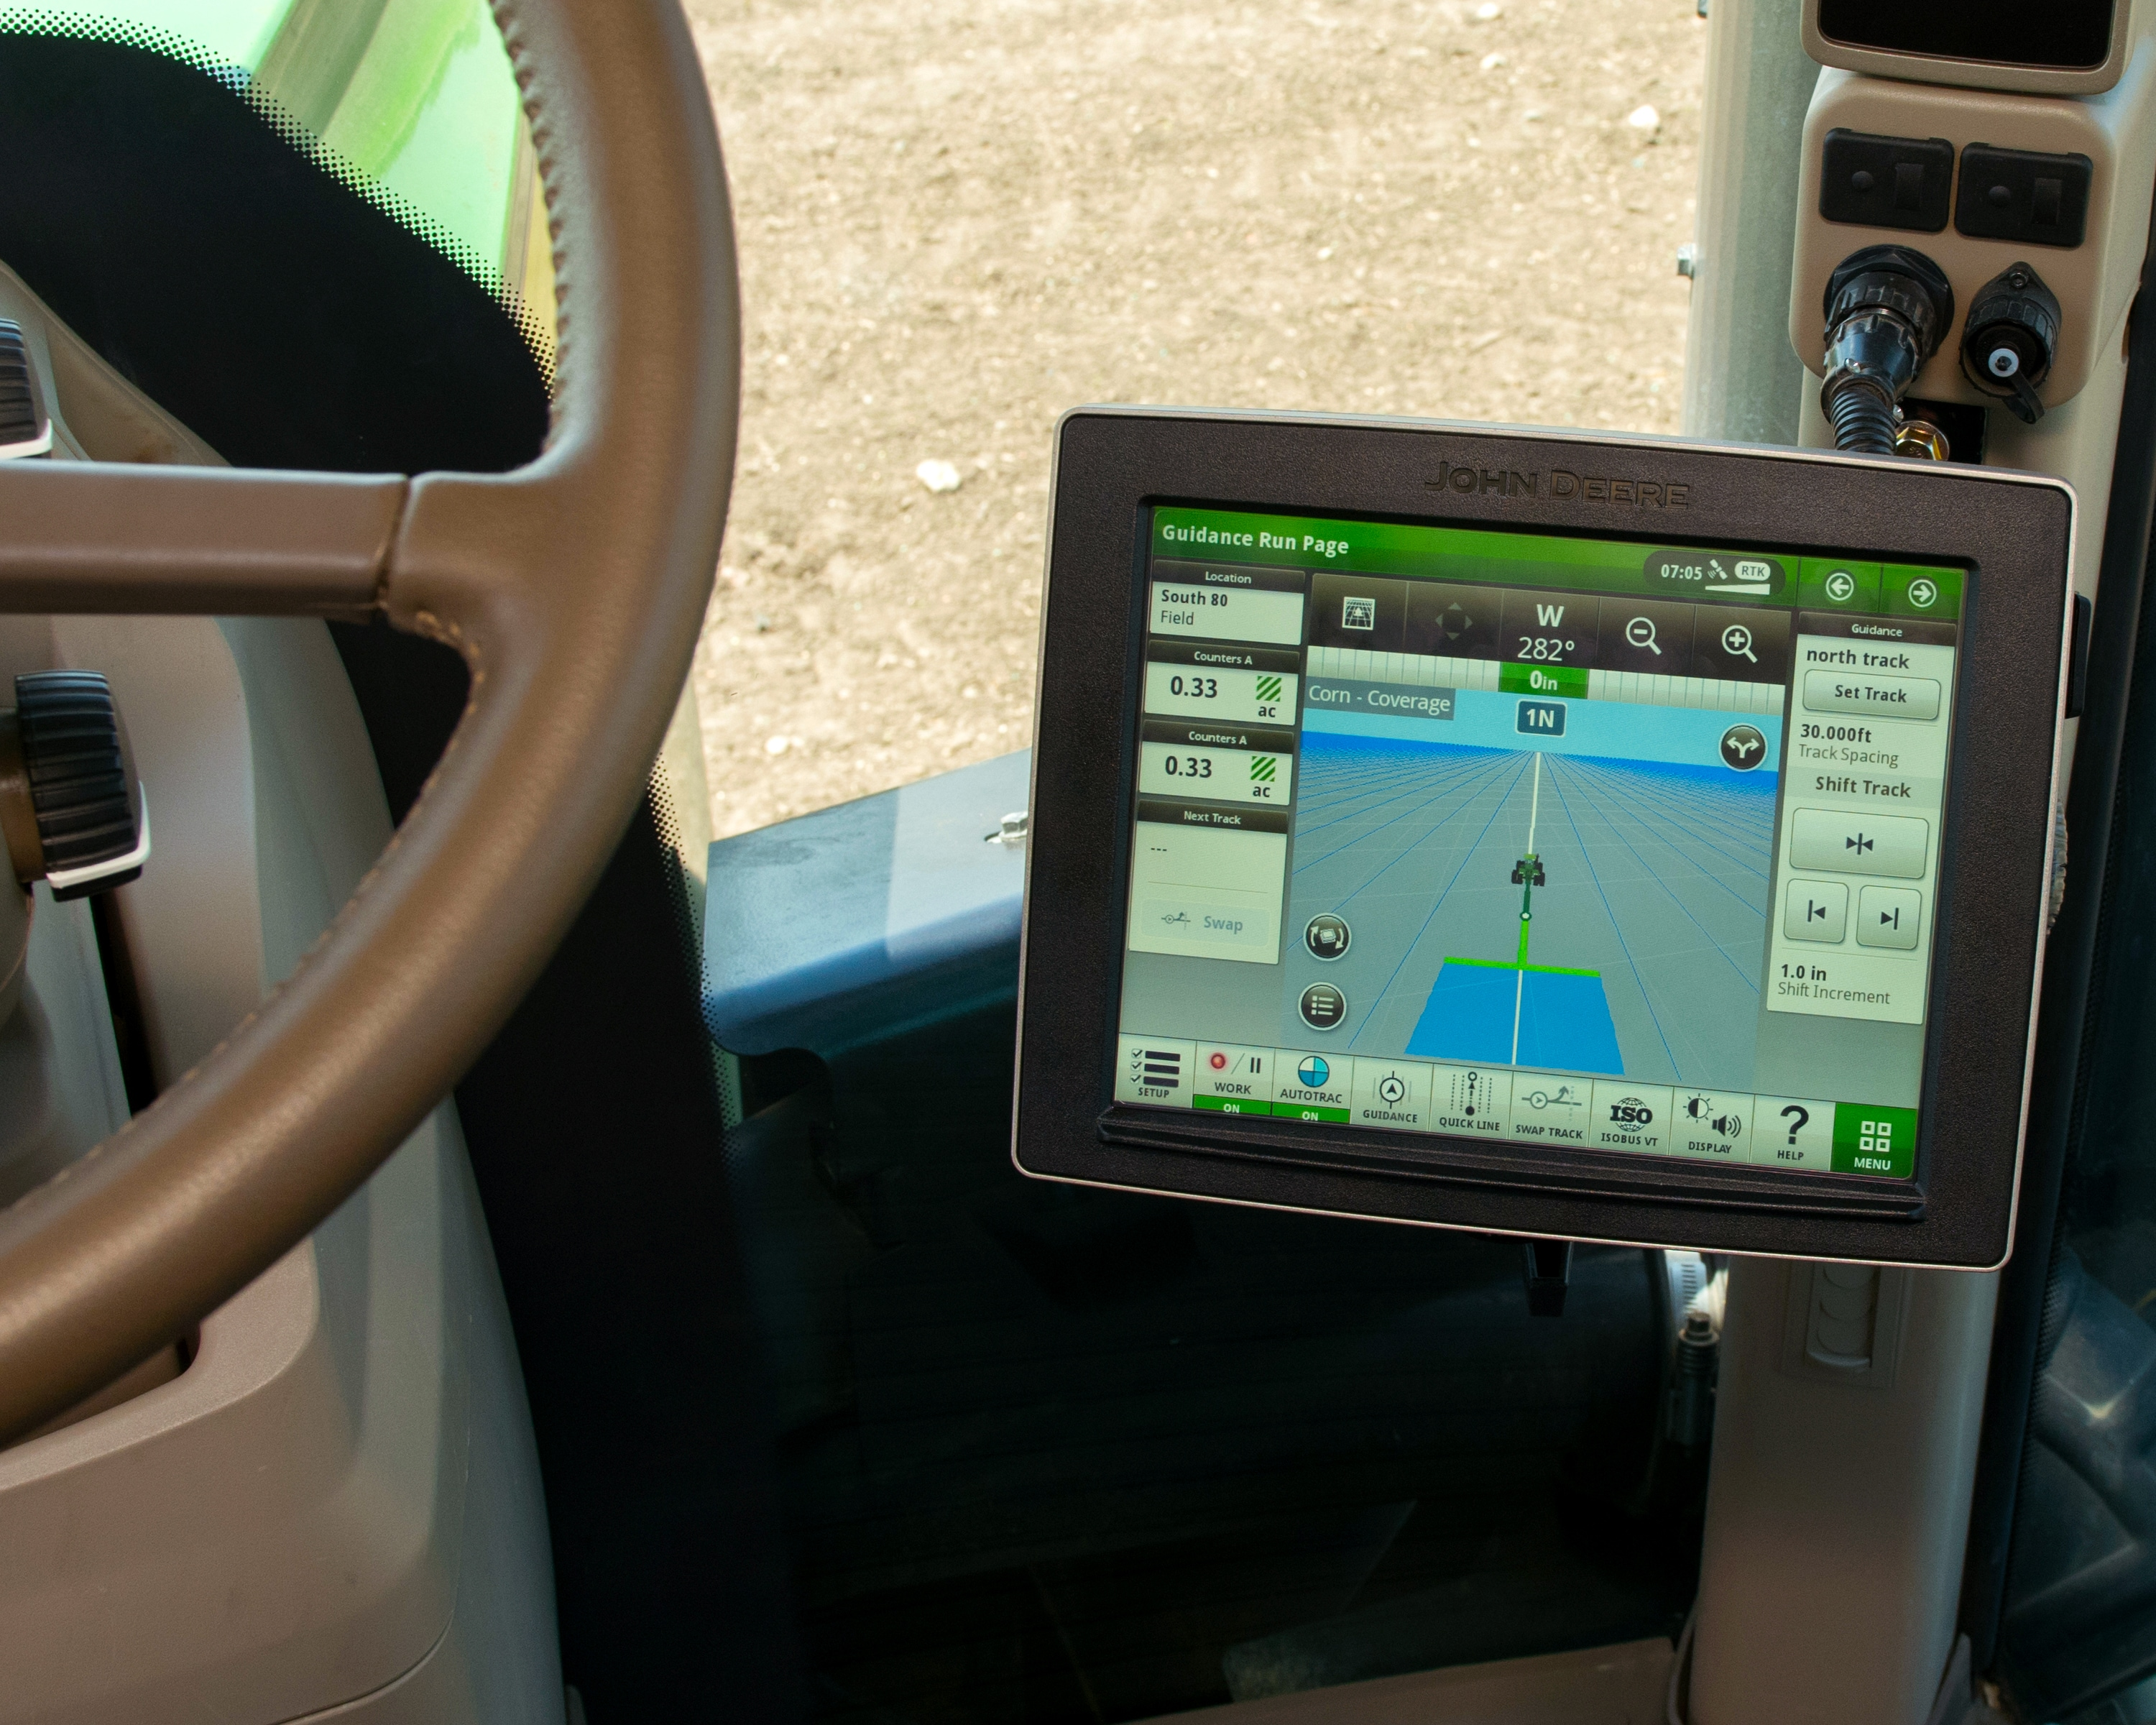 New John Deere 4640 Universal Displays offer better data collection and increased functionality.